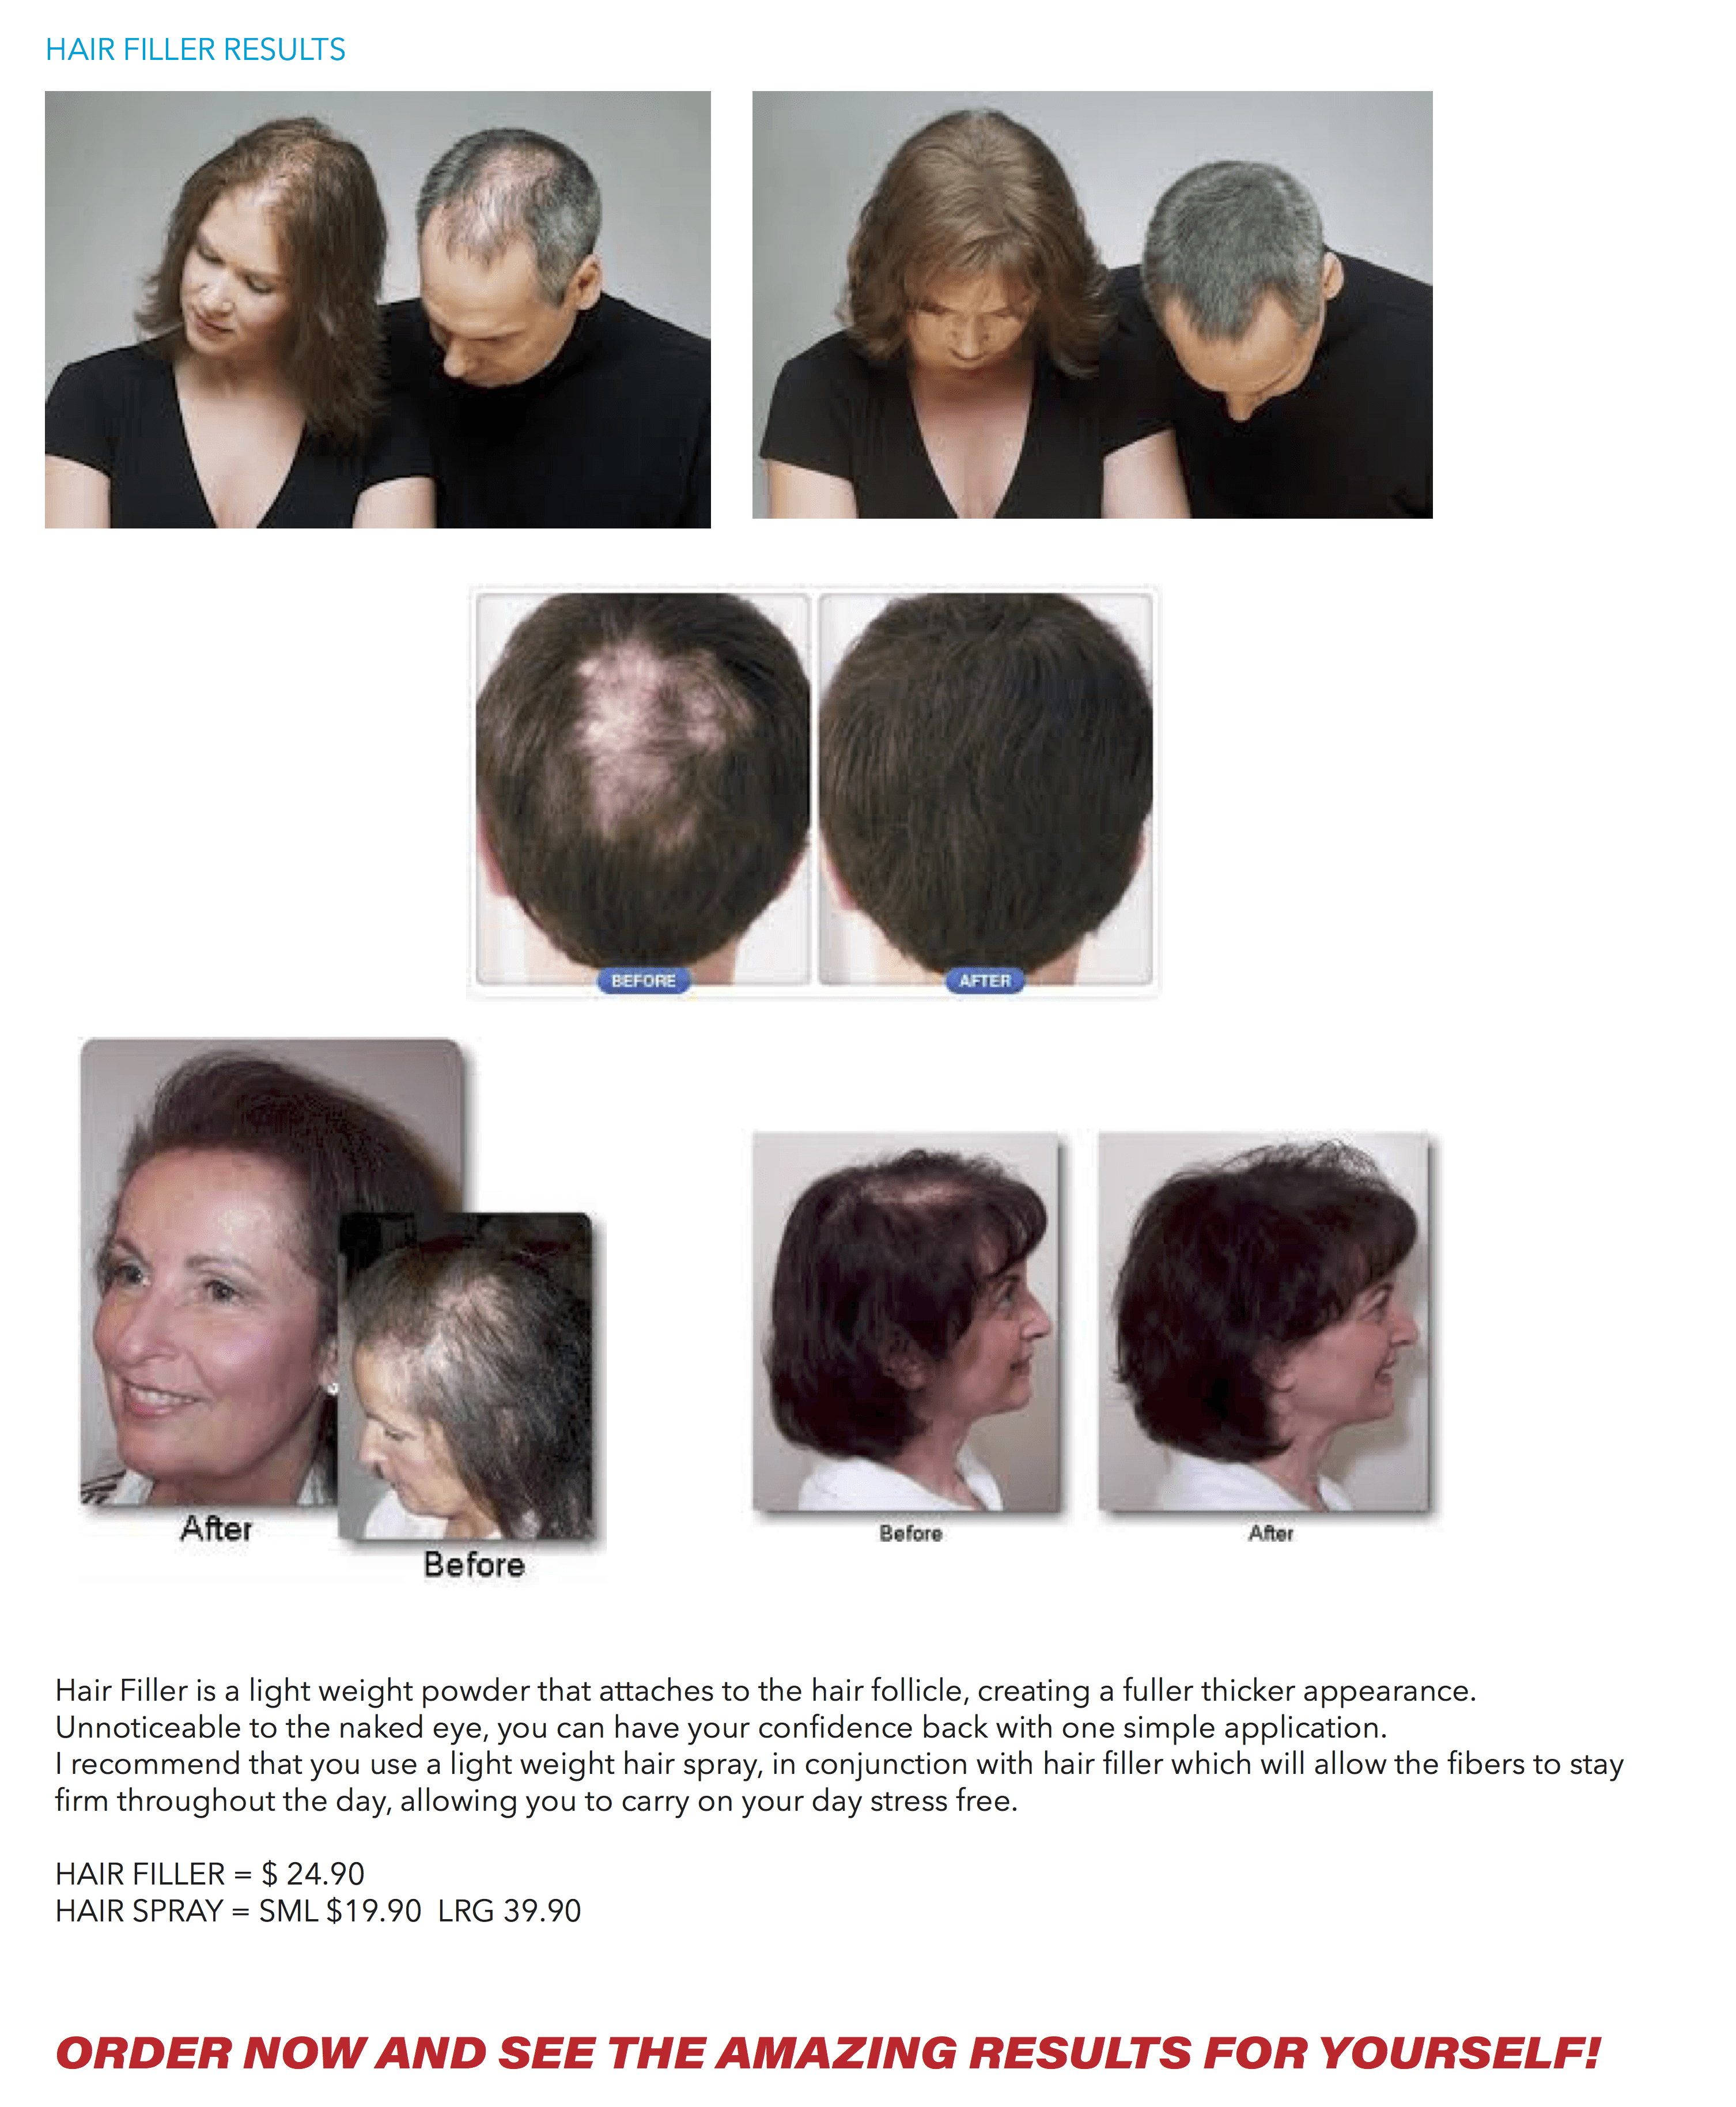 Hair so real arkon health australia arcon tisane hair loss to your existing hair matching your hair completely from colour to style to form a complete layer of hair and conceal any balding area solutioingenieria Choice Image